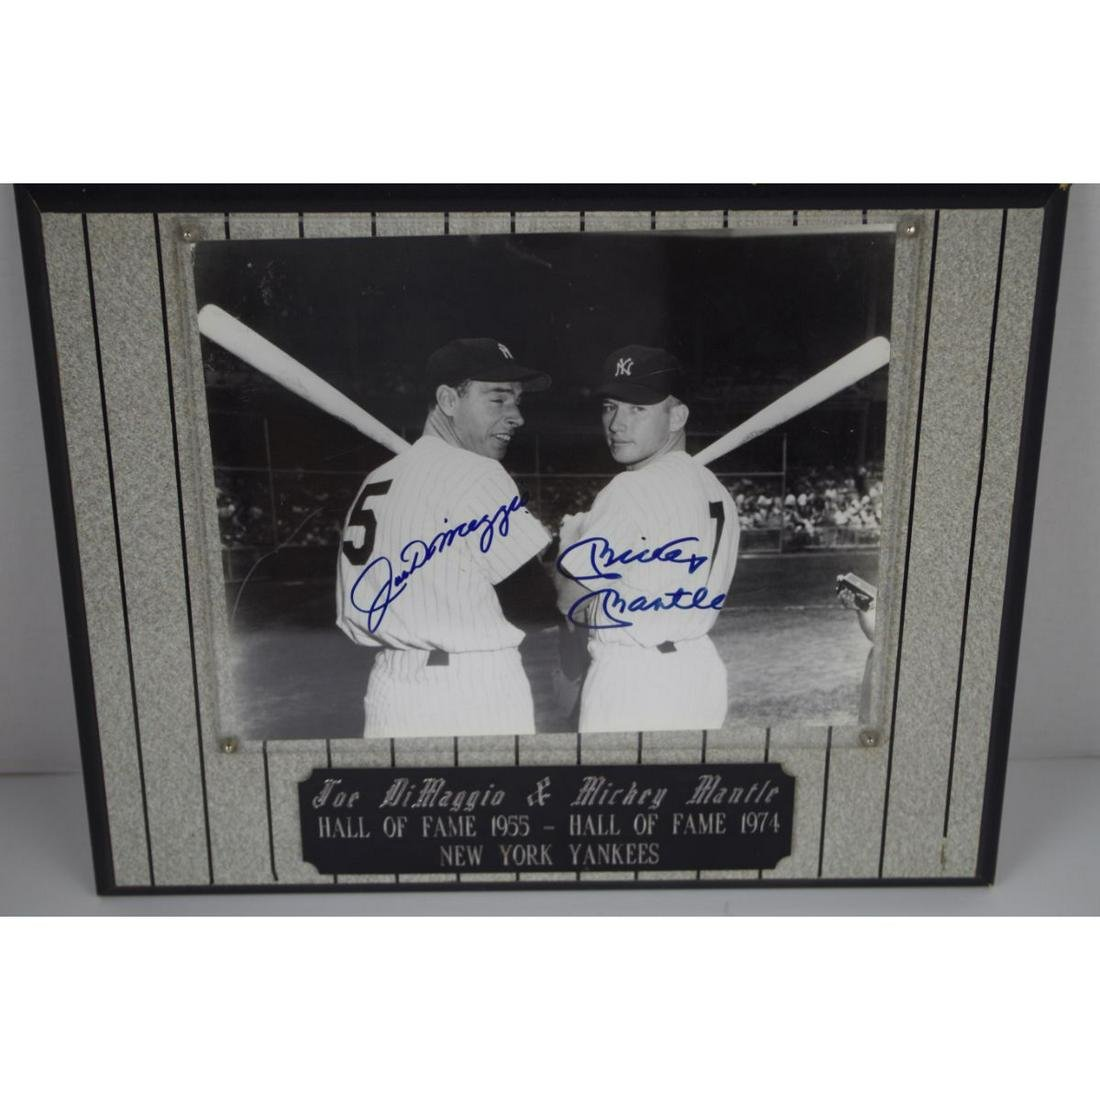 DIMAGGIO AND MANTLE FRAMED DOUBLE AUTOGRAPH